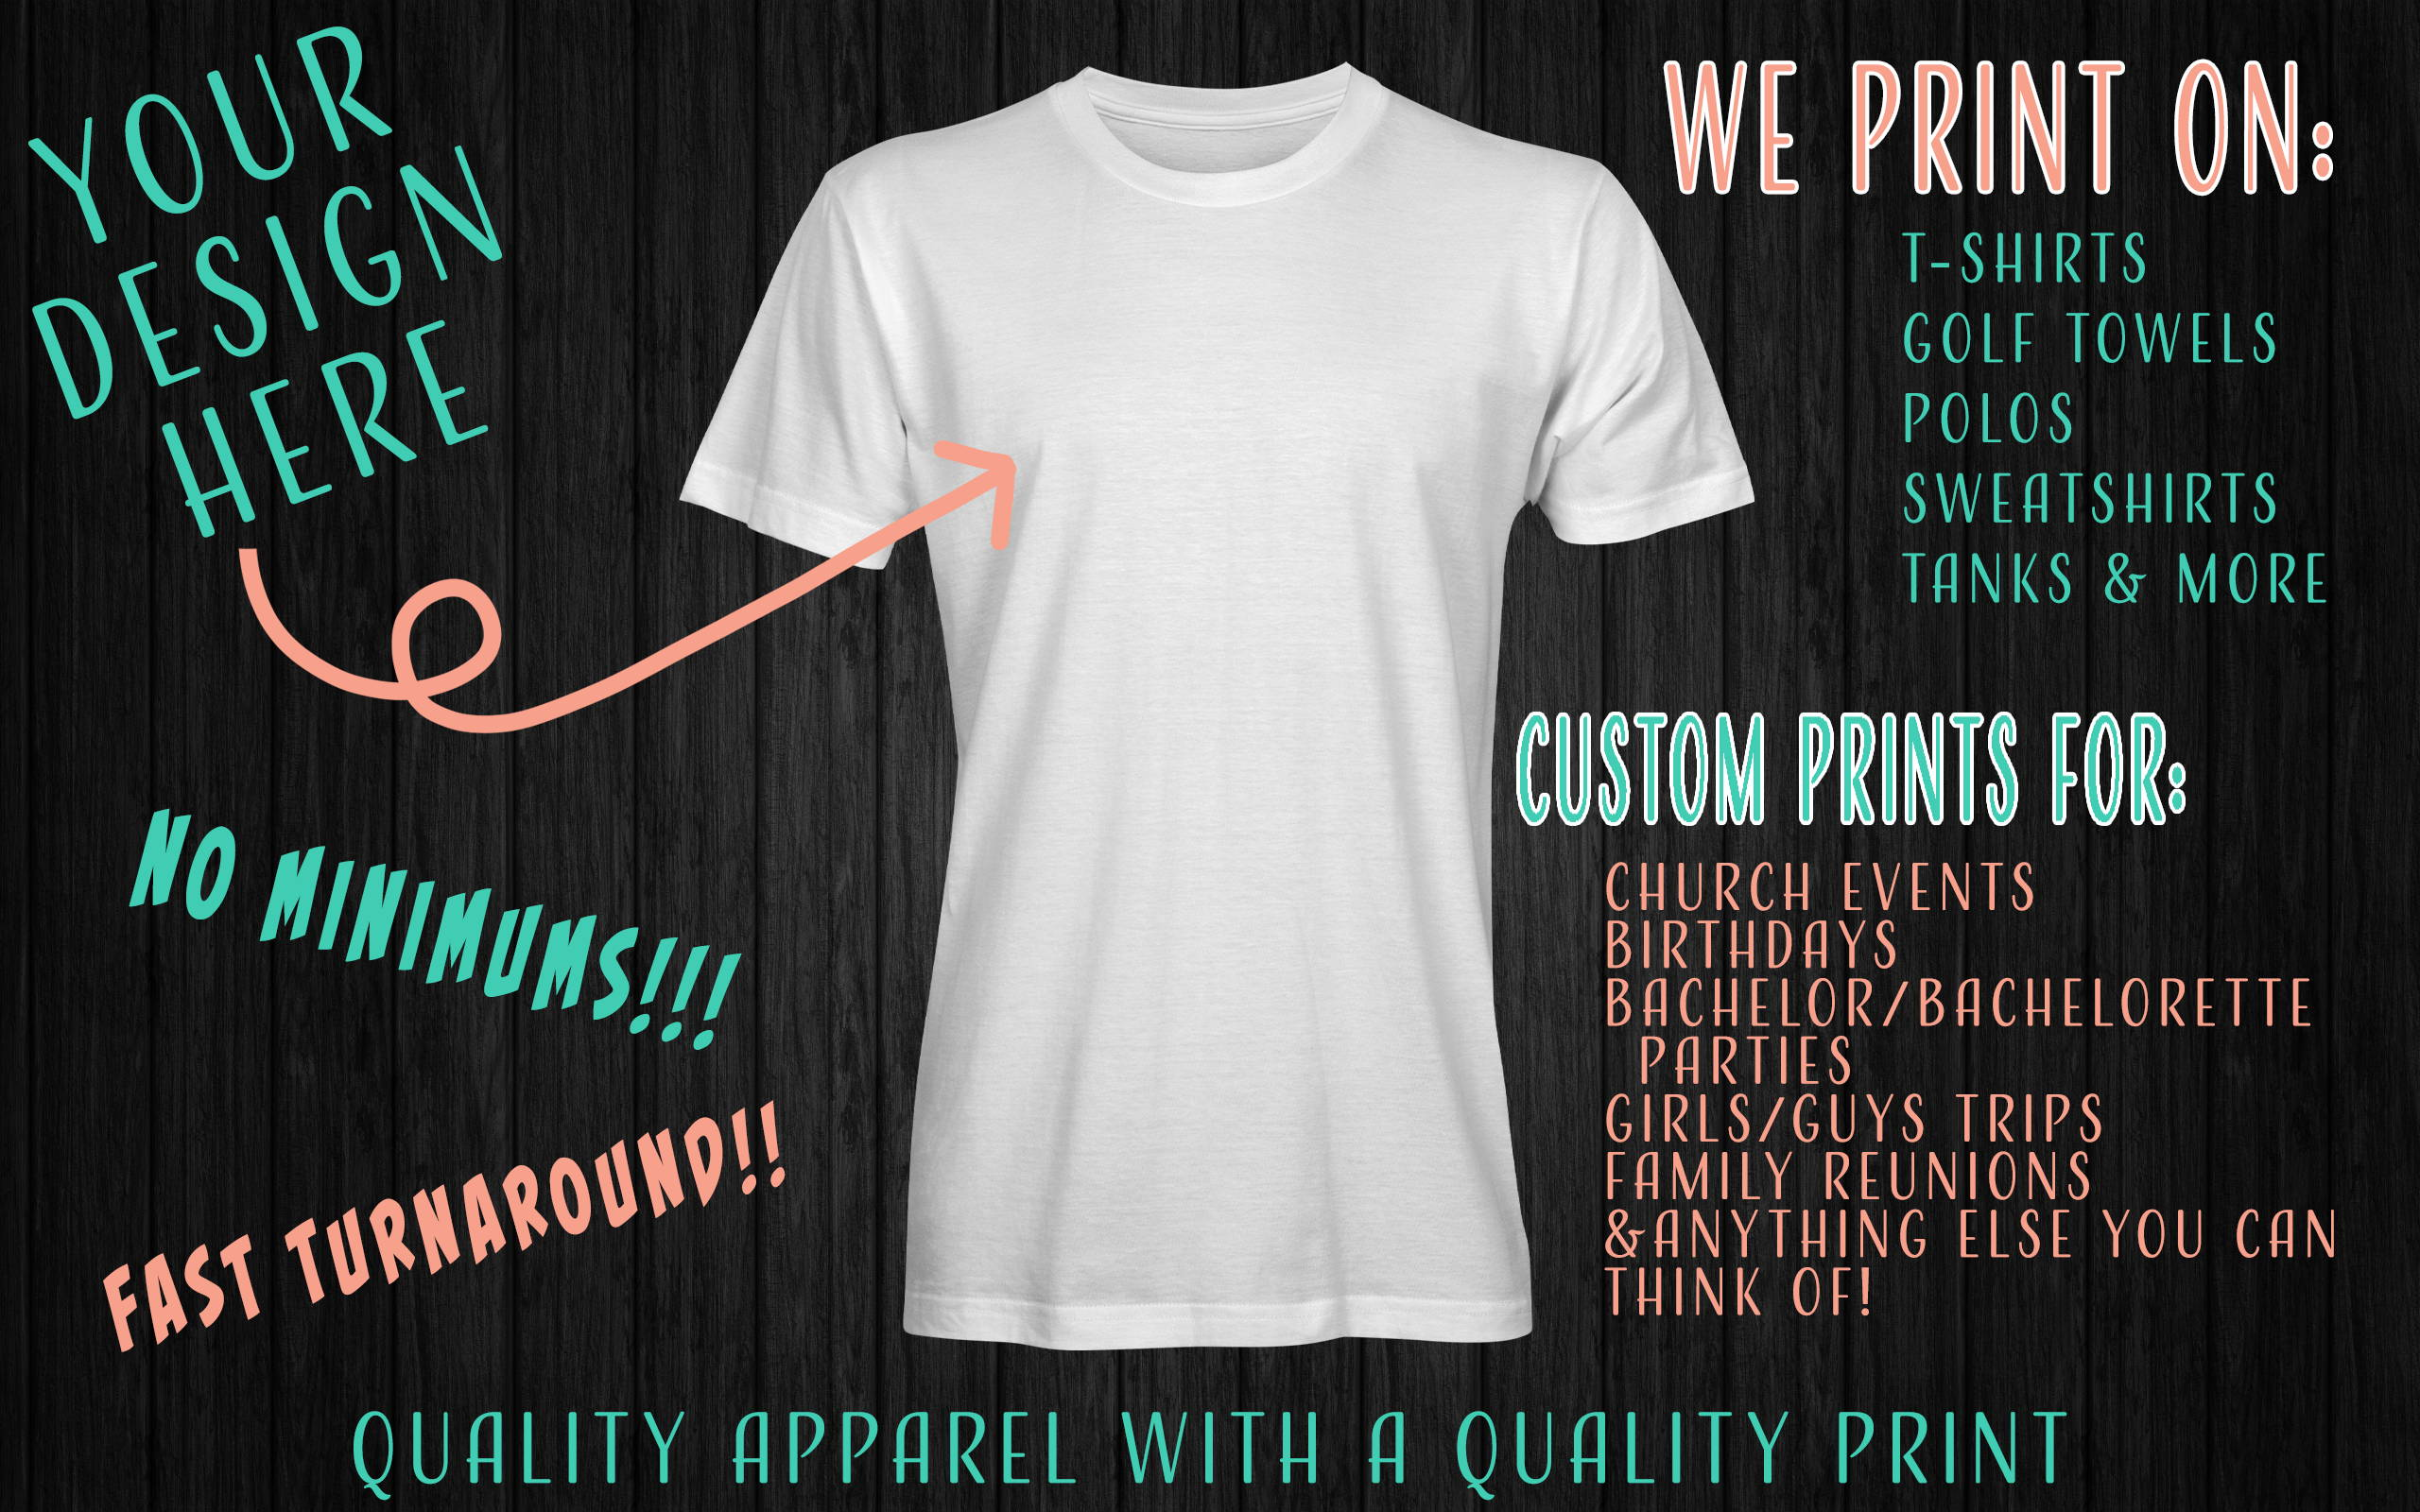 DIY Custom T-shirts apparel